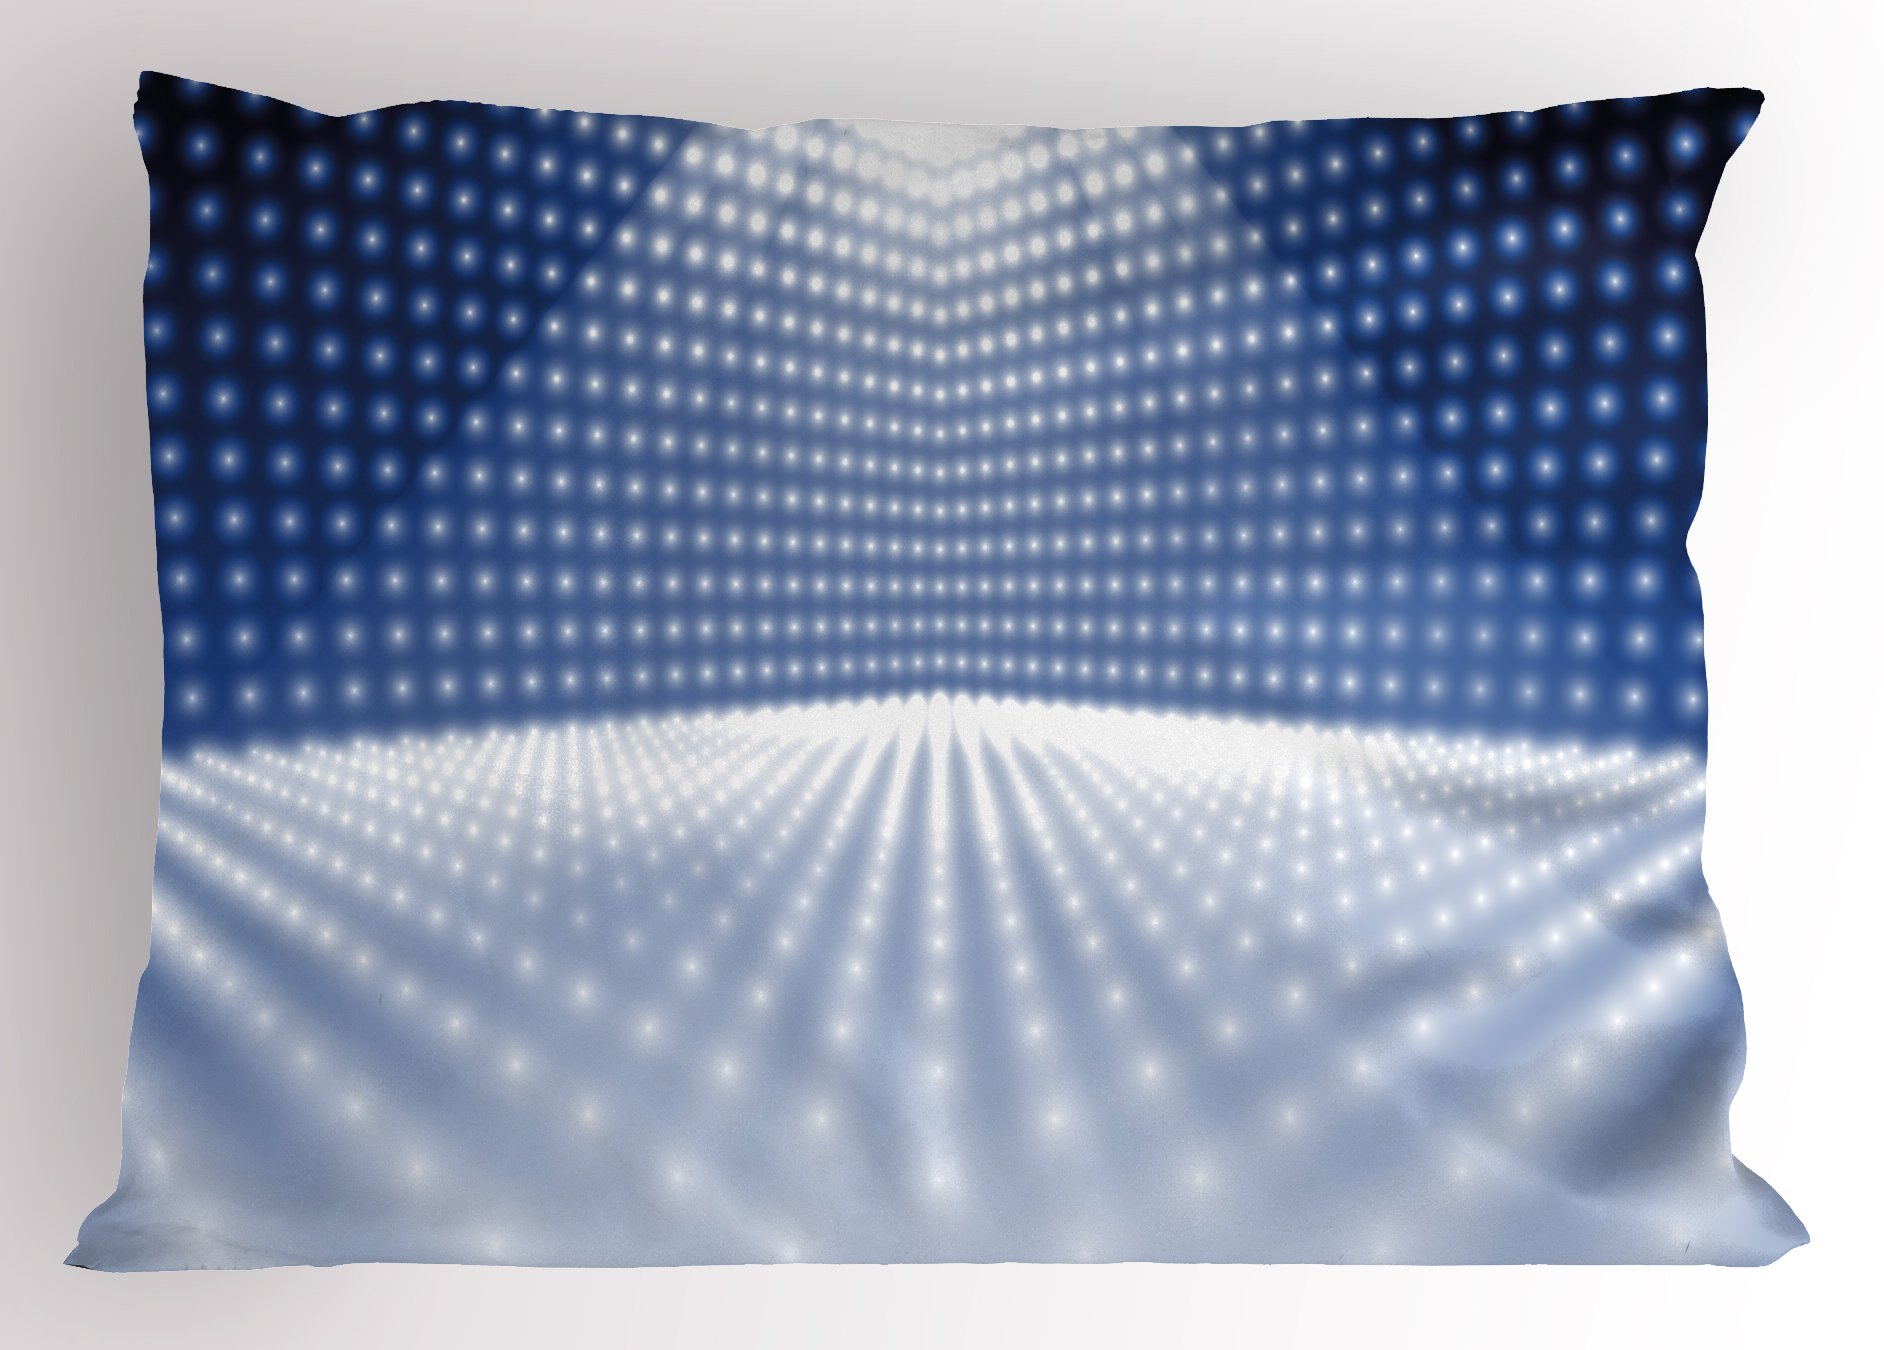 Lunarable Disco Pillow Sham, Vibrant Dotted Stage Image Movie Theater Concert Performance Dance and Music, Decorative Standard King Size Printed Pillowcase, 36 X 20 inches, Navy Blue White